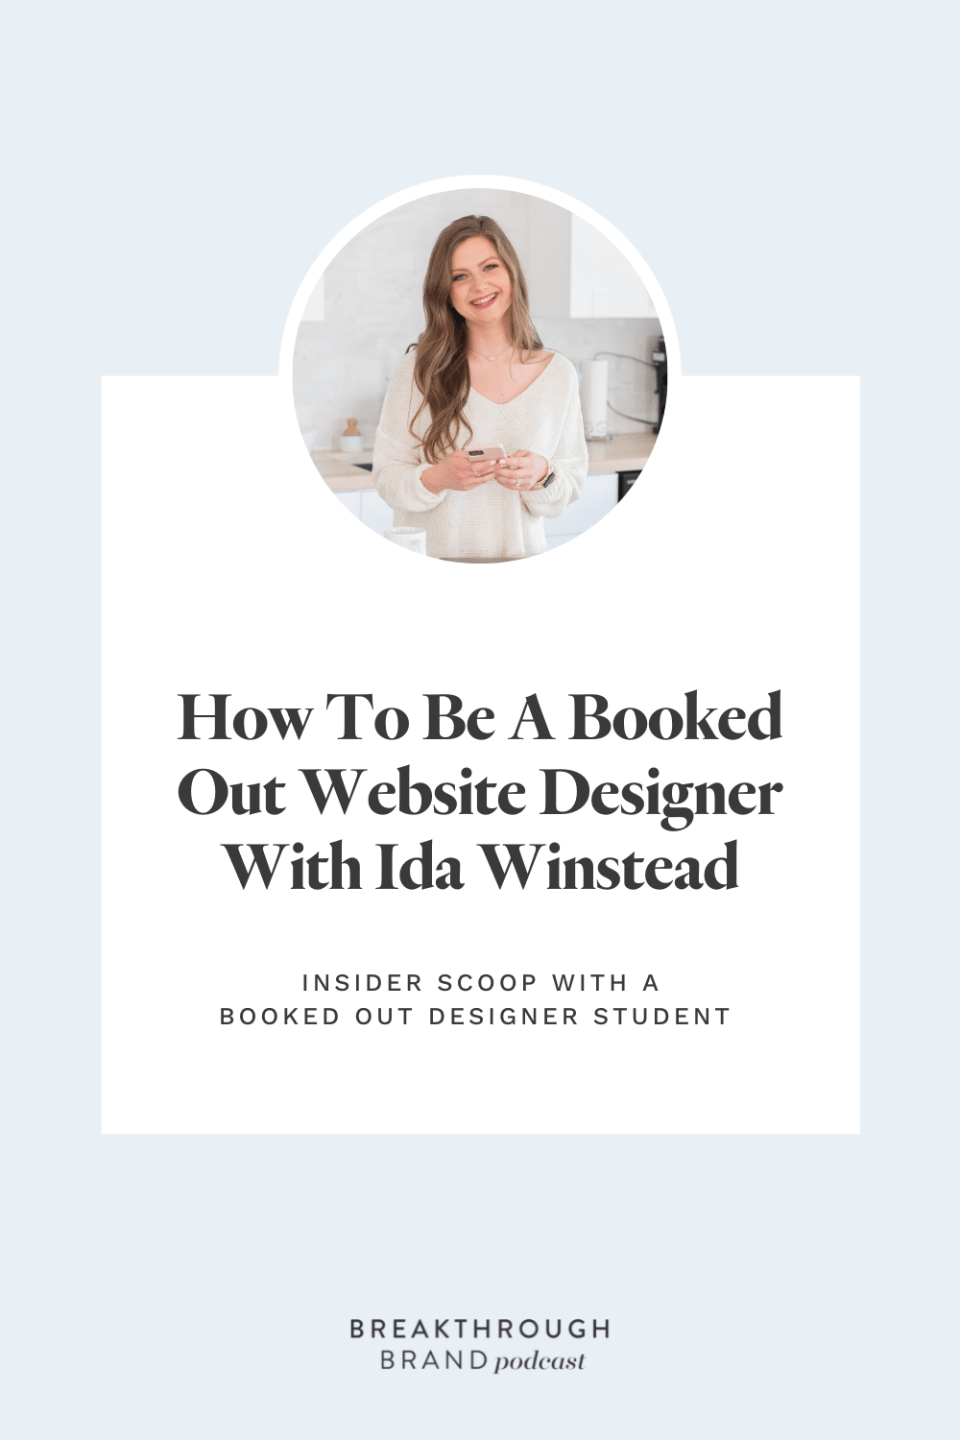 Peak inside the course experience with Ida Winstead, founding member of Booked Out Designer.